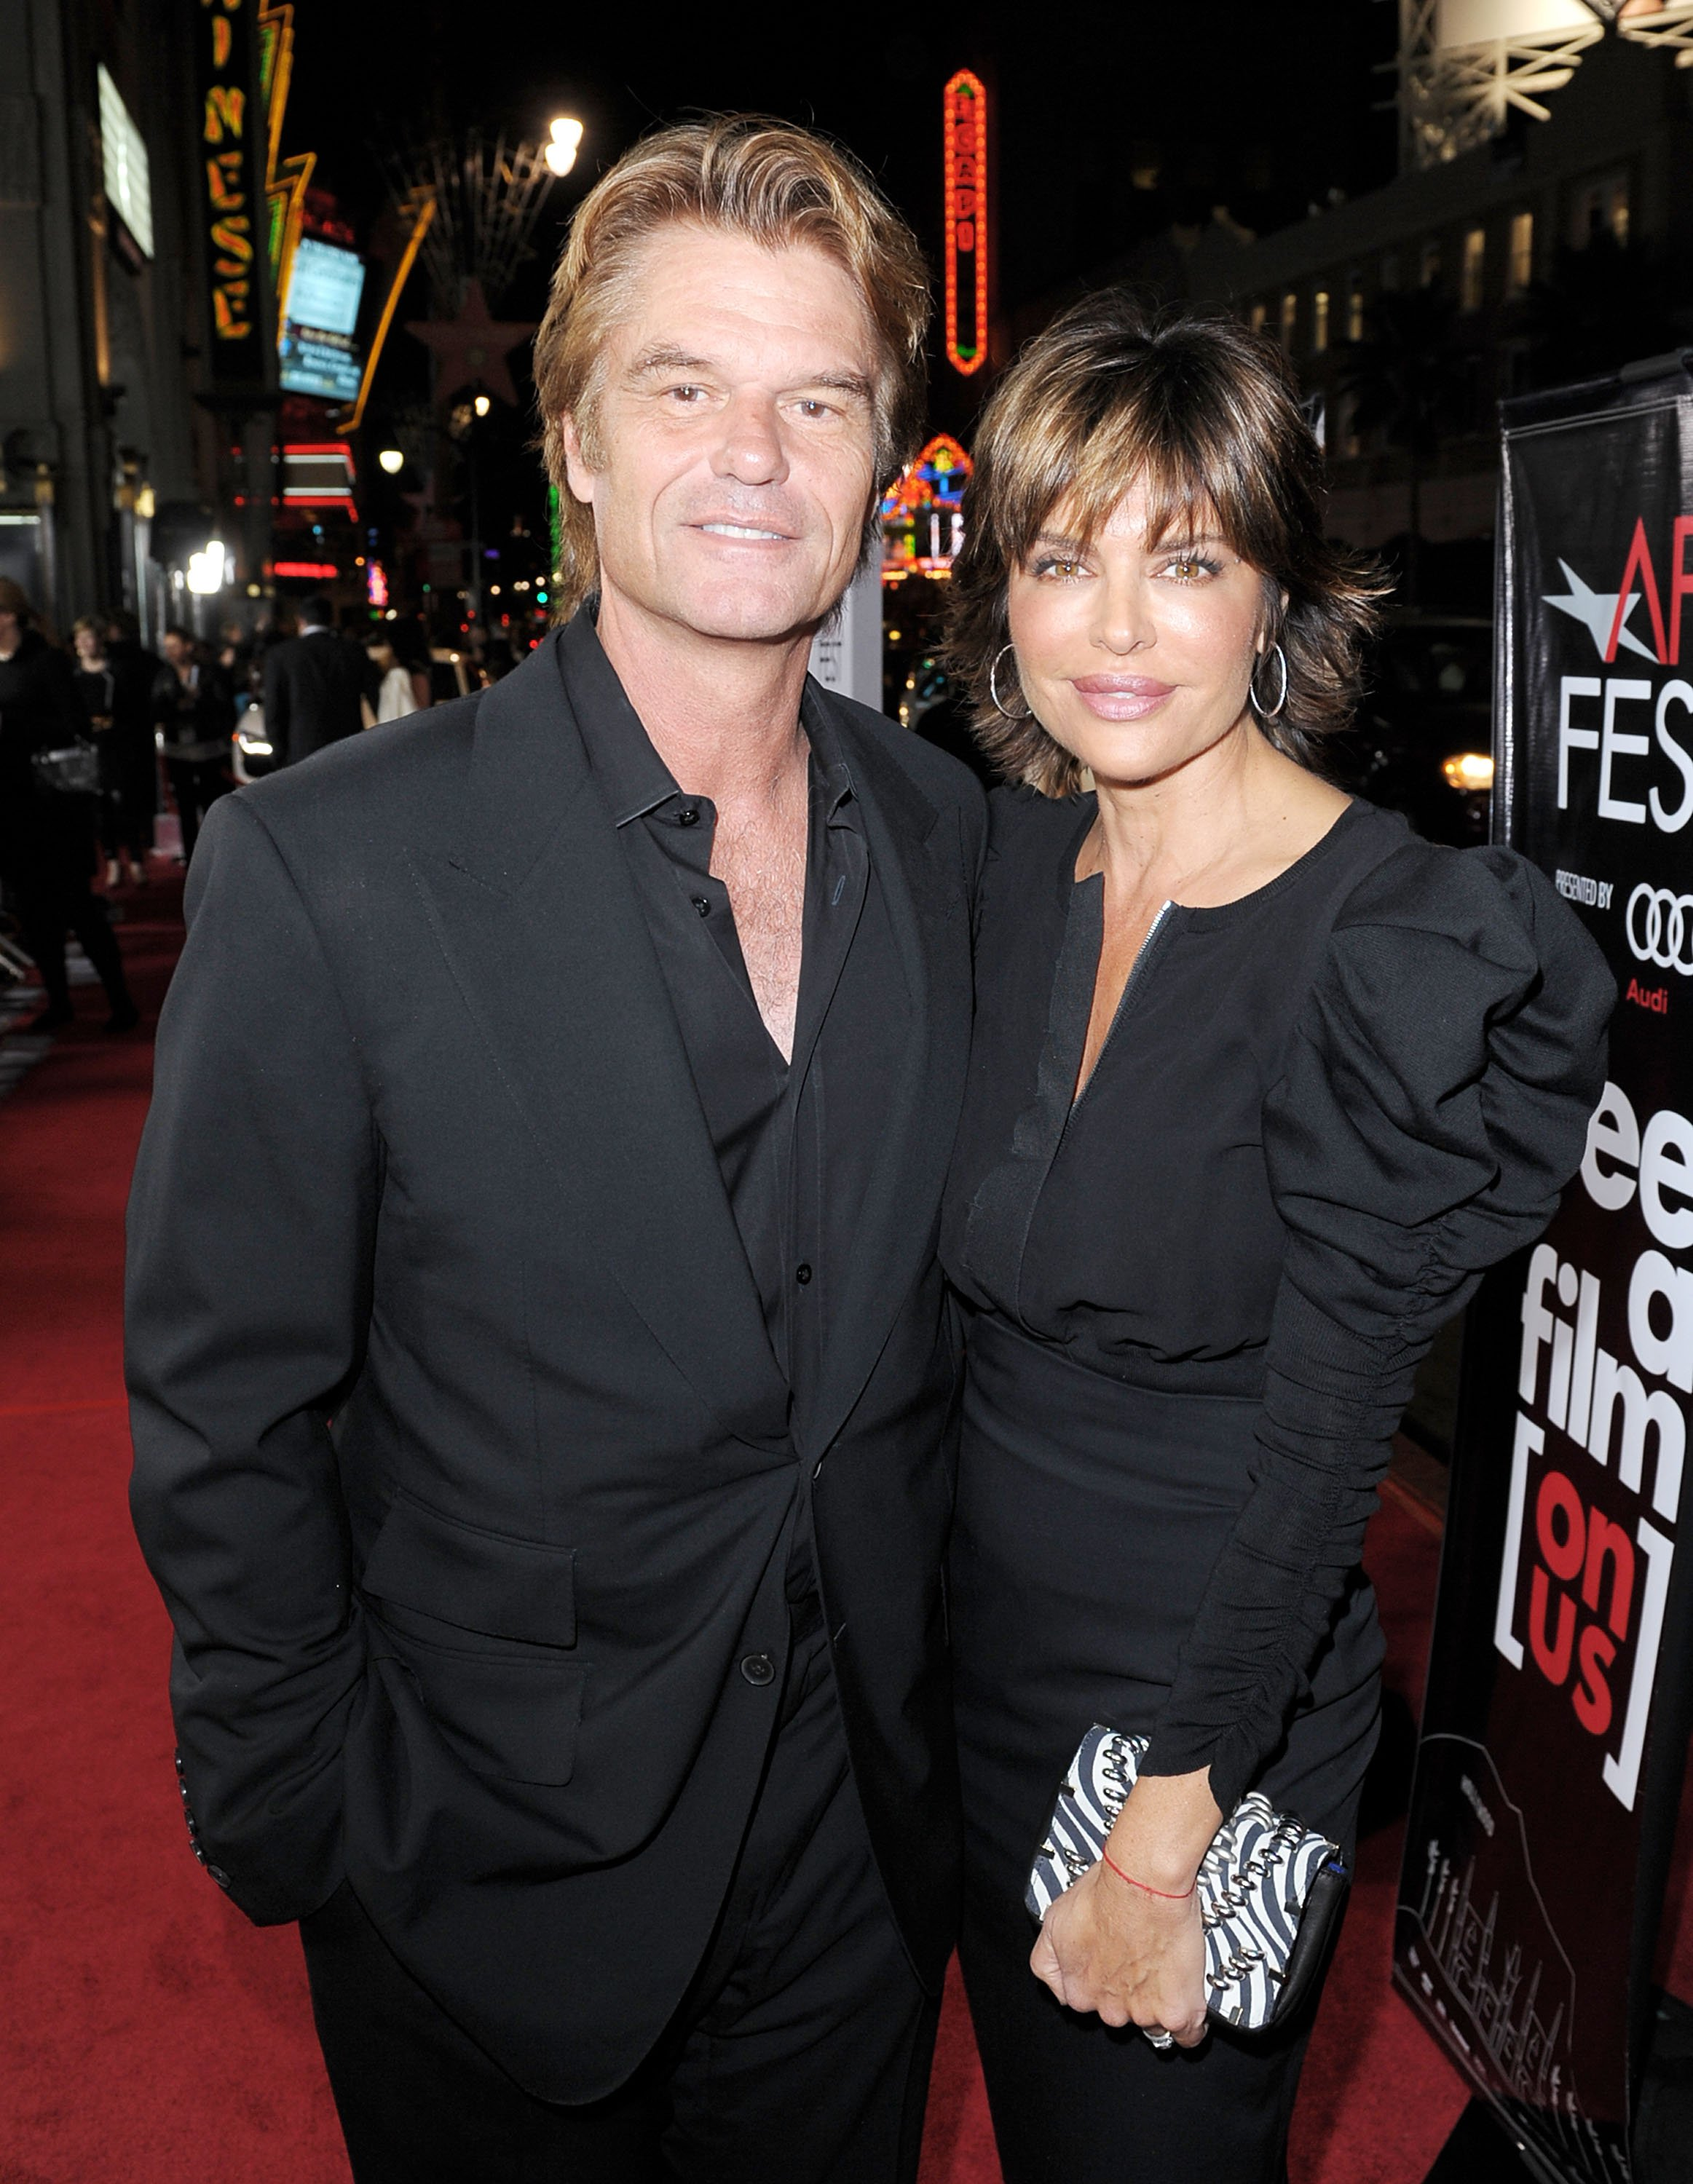 """Harry Hamlin and wife Lisa Rinna arrive at the AFI FEST 2009 screening of  """"A Single Man""""  on November 5, 2009 in Los Angeles, California. 